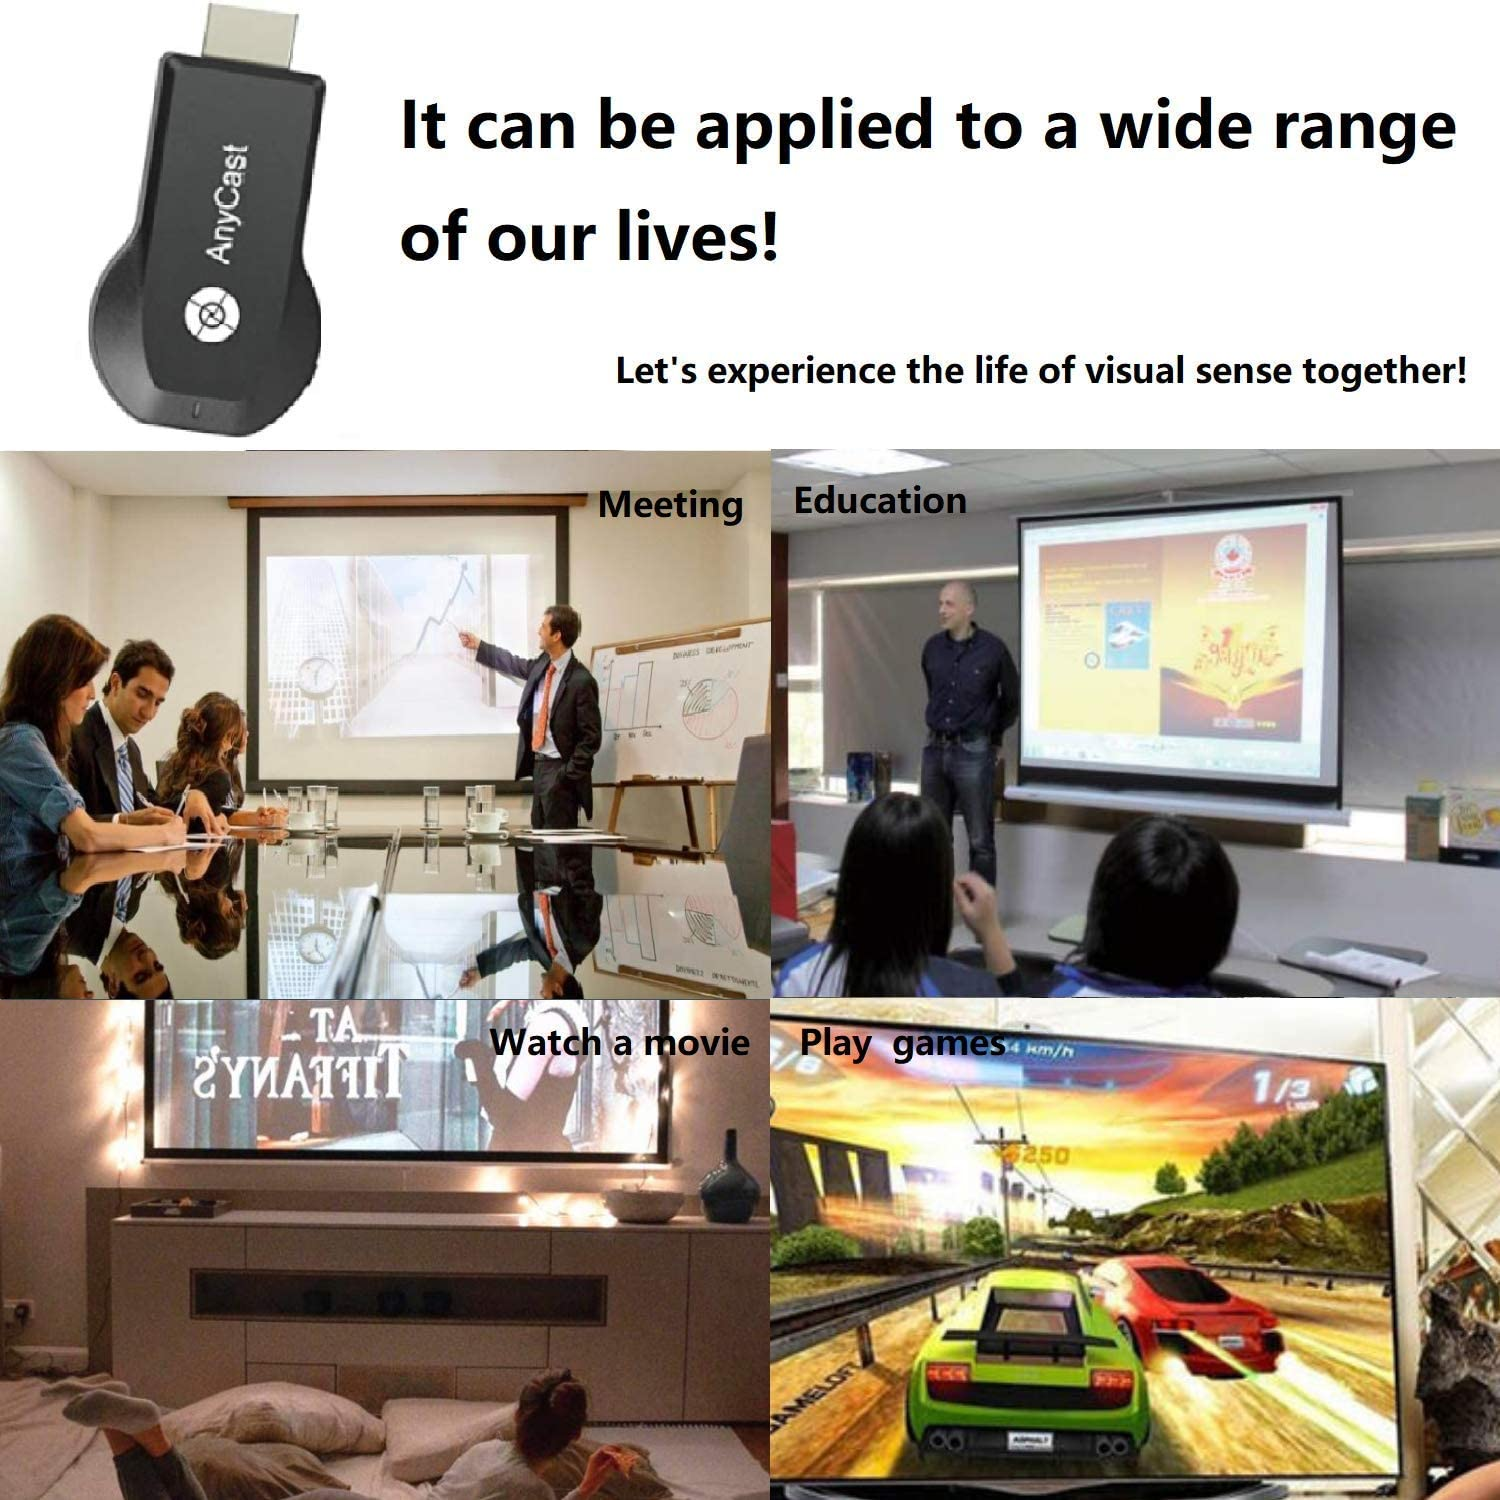 iOS//Android//PC//Tablet//Windows//Mac OS to HDTV//Monitor//Projector DLNA Support Miracast Miracast Dongle for TV,Upgraded Toneseas Streaming Receiver,MacBook Laptop Airplay Wireless 4K/&1080P HDMI Wireless Display Adapter